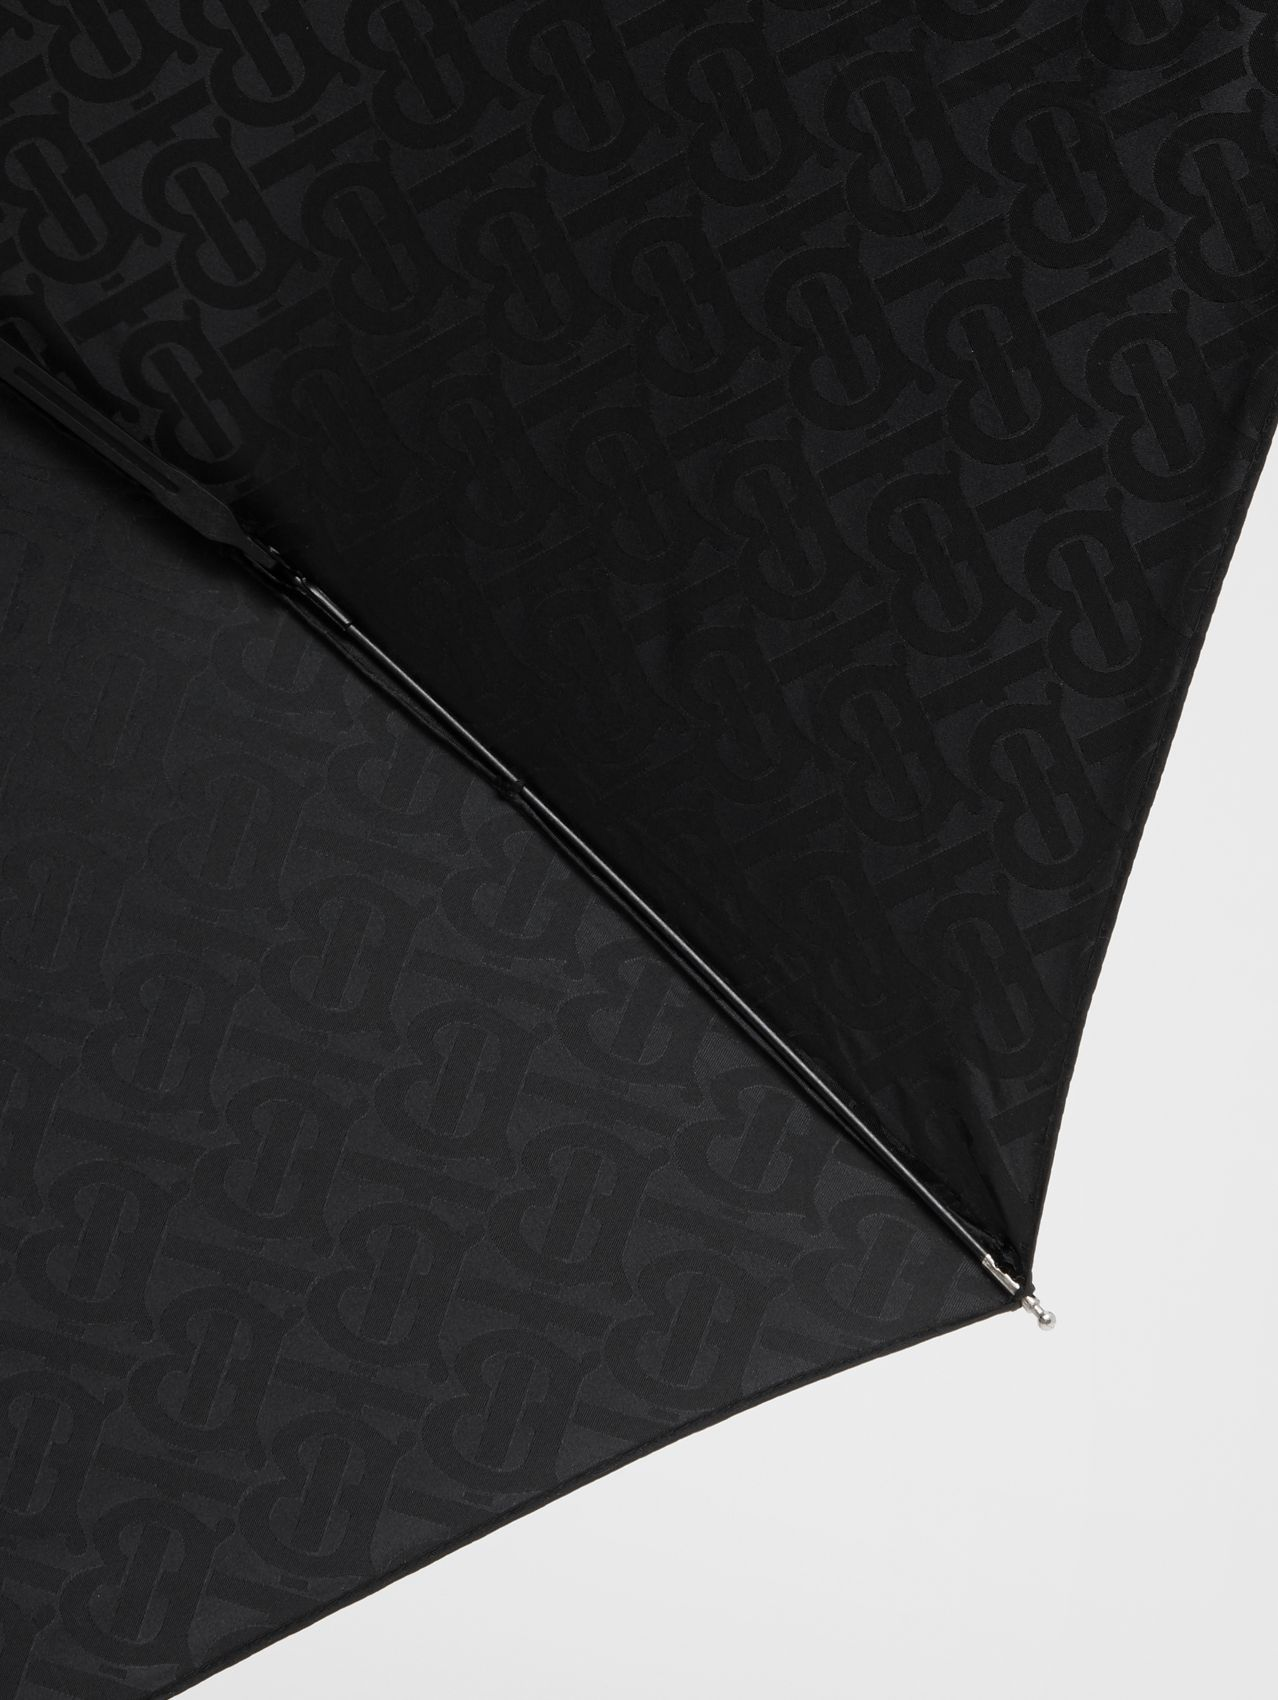 Monogram Print Folding Umbrella in Black